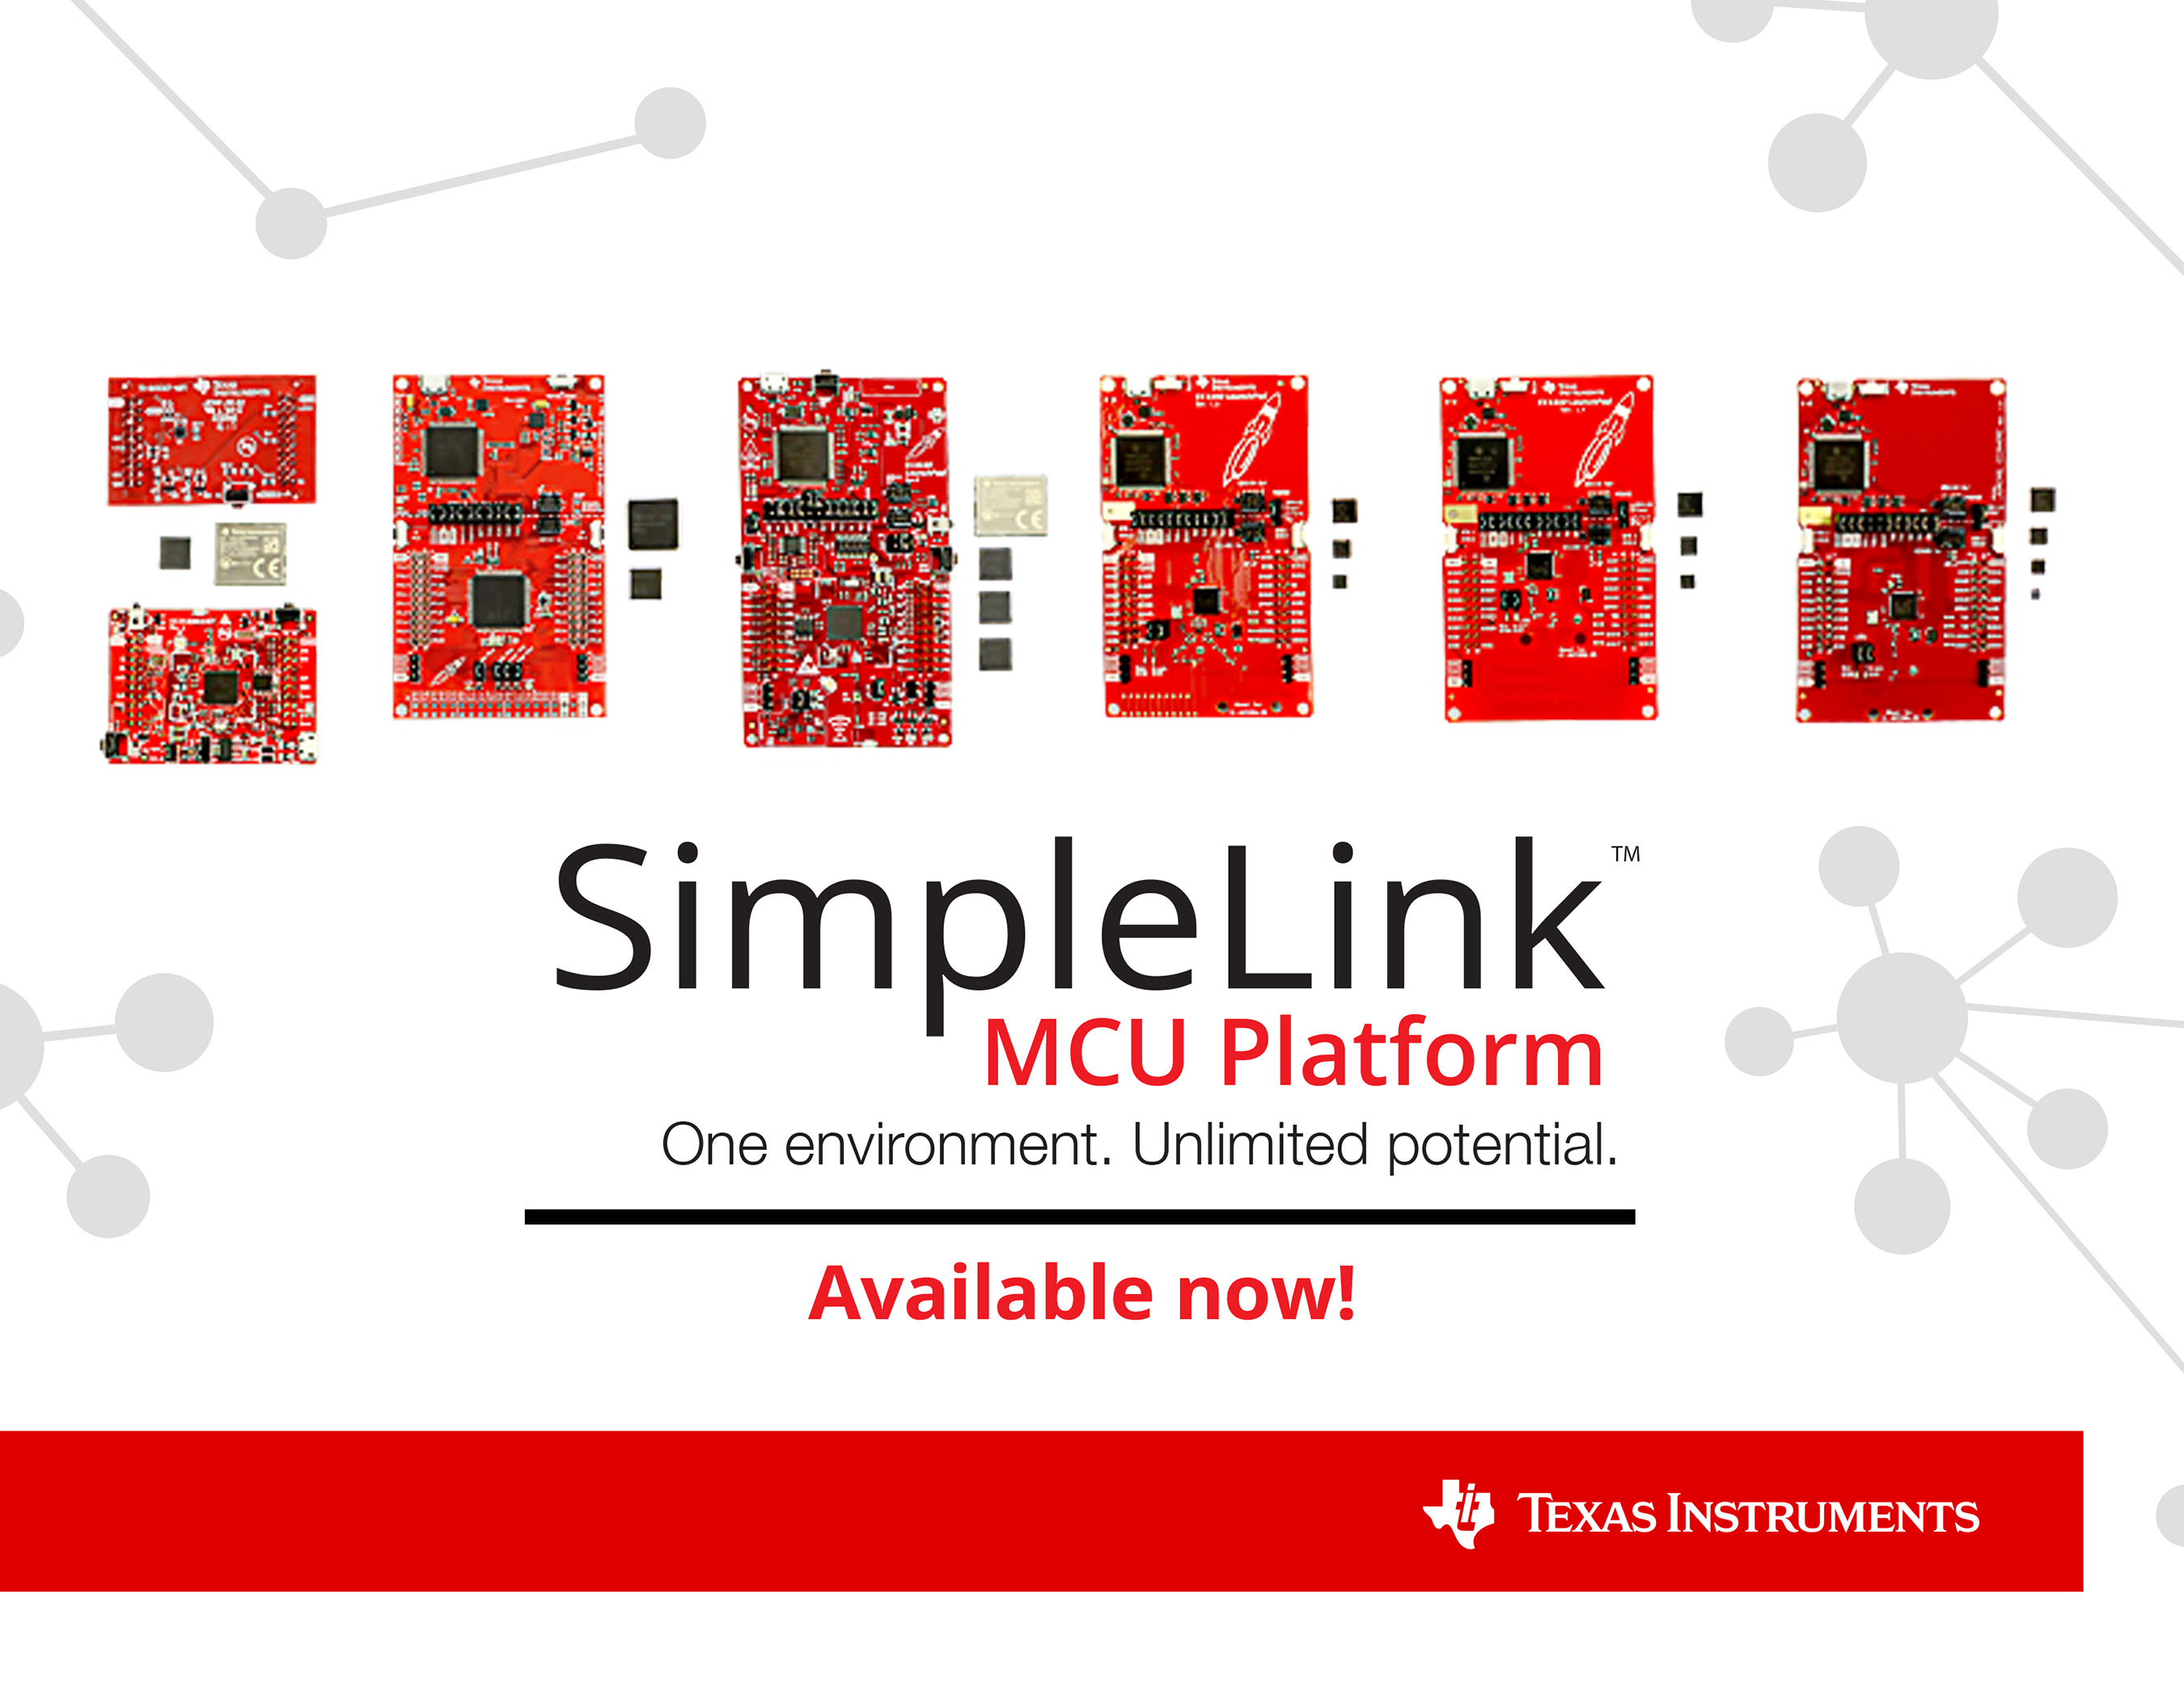 TI�s new SimpleLink platform transforms development with 100 percent code reuse across the industry�s broadest portfolio of wired and wireless MCUs